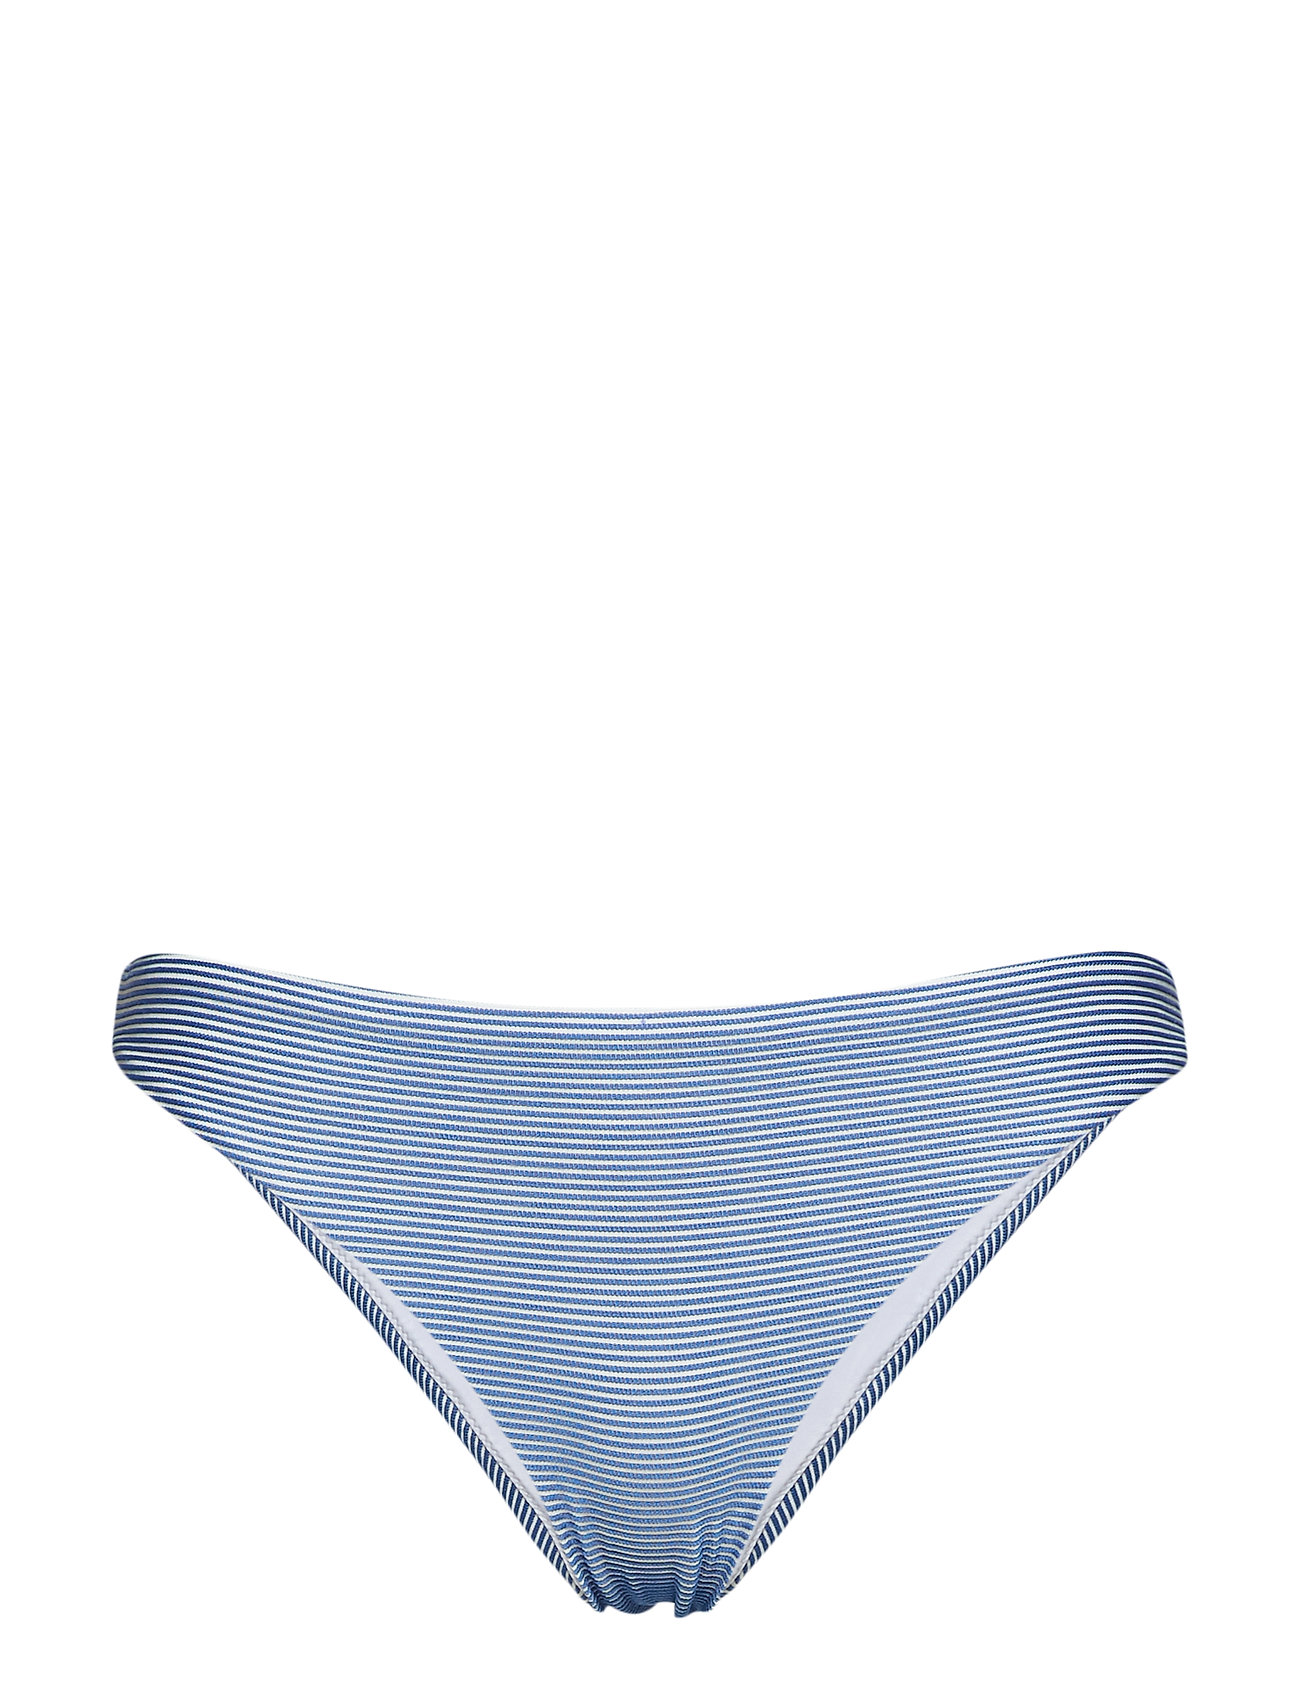 Femilet Belize - Tanga brief - CERAMIC BLUE W/